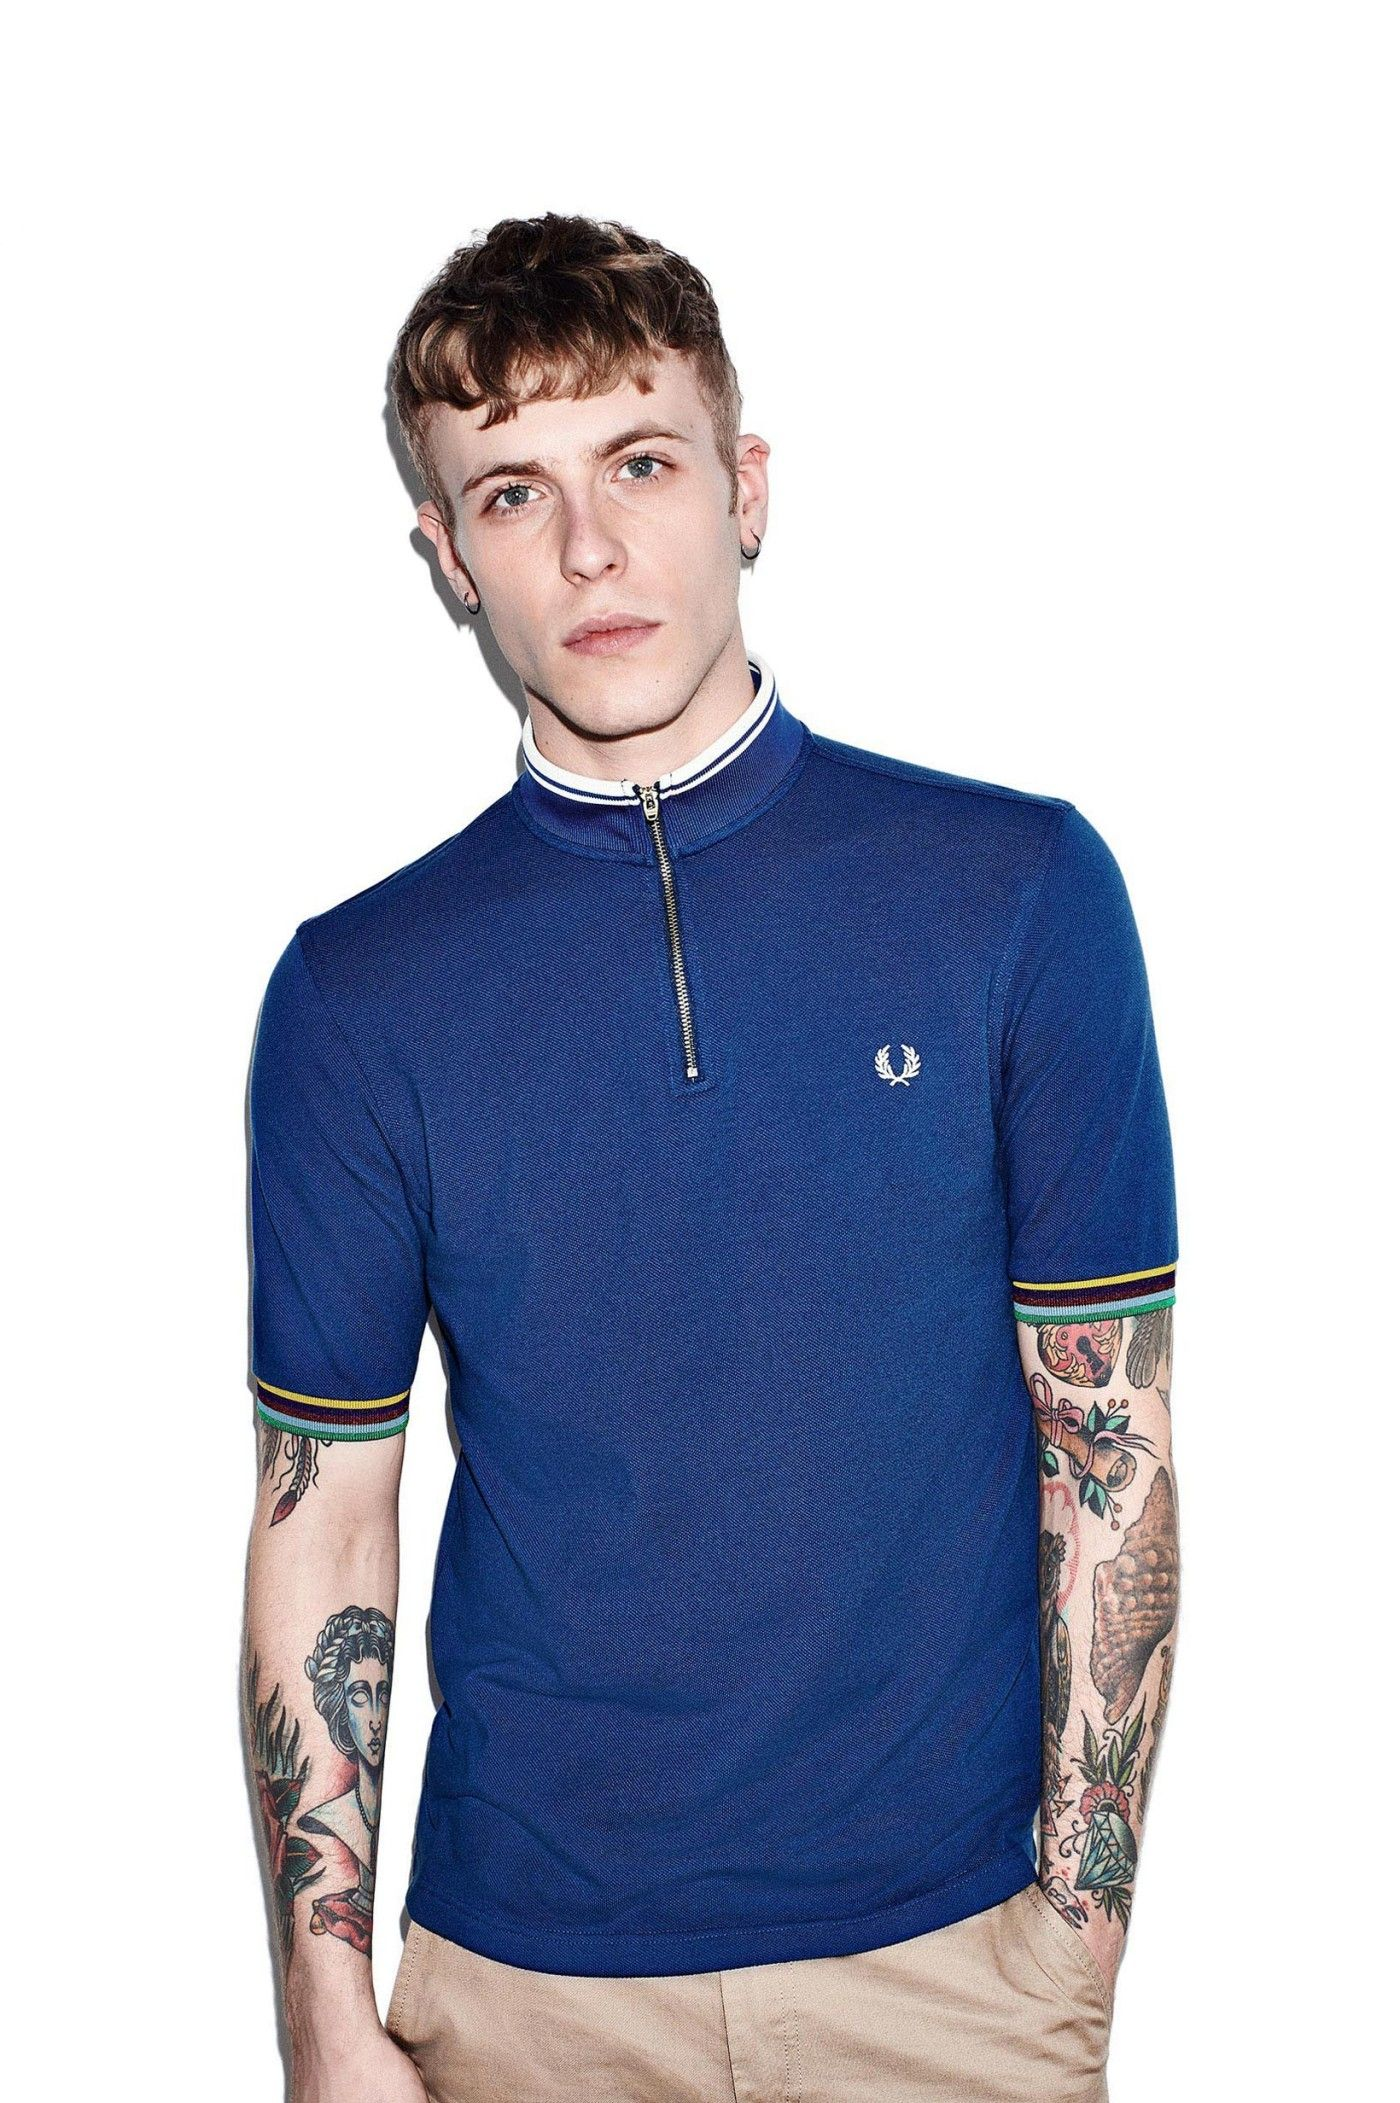 Fred Perry - Bradley Wiggins Tipped Cycling Shirt Persian Blue ... 9aeed4ff4859